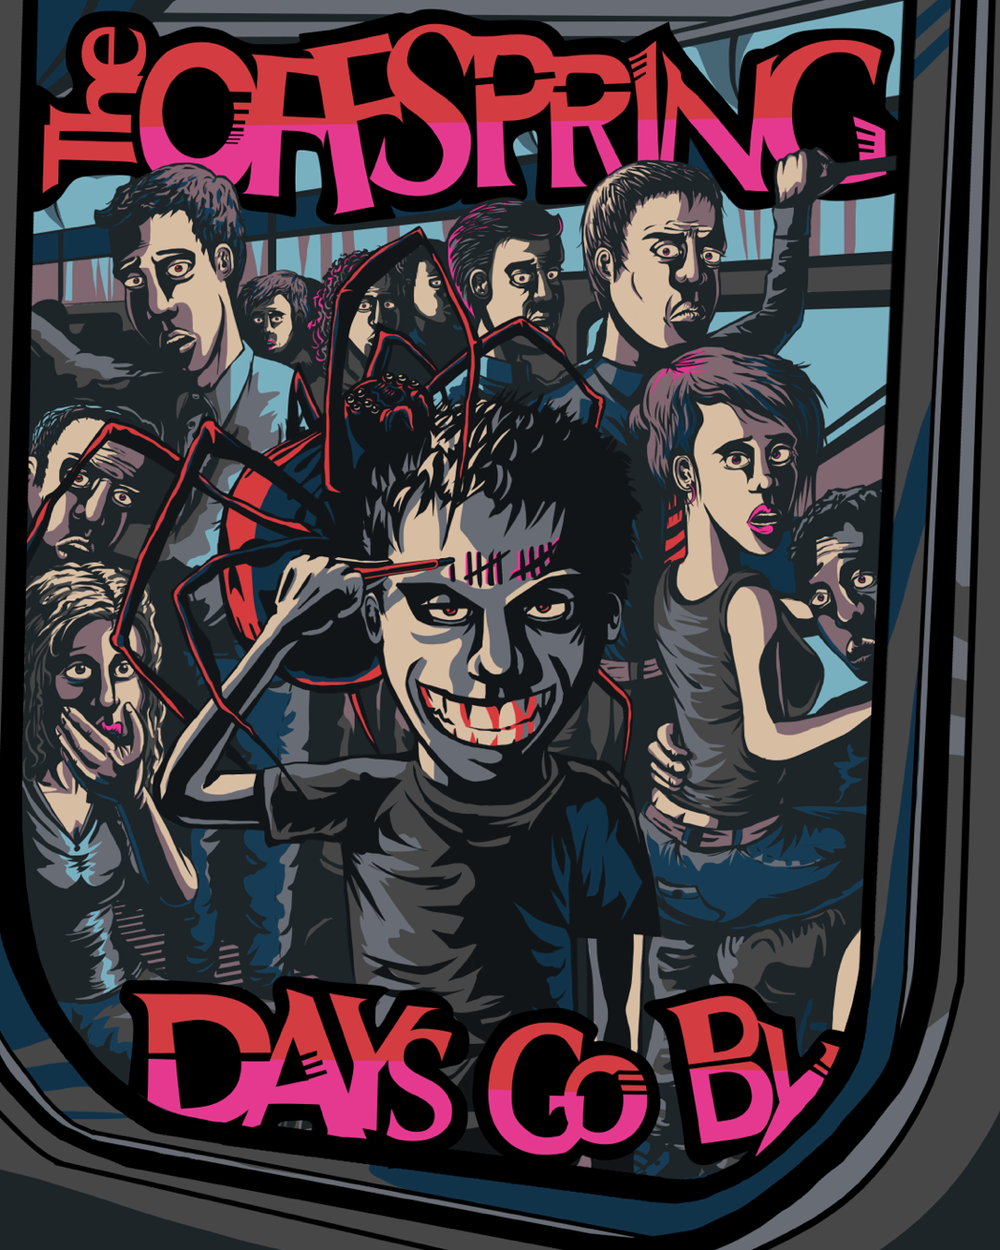 "Submitted as a potential introduction poster for the Offspring's new tour ""Days Go By"" This design was top 3 in voting and was shown to the band as a final option."